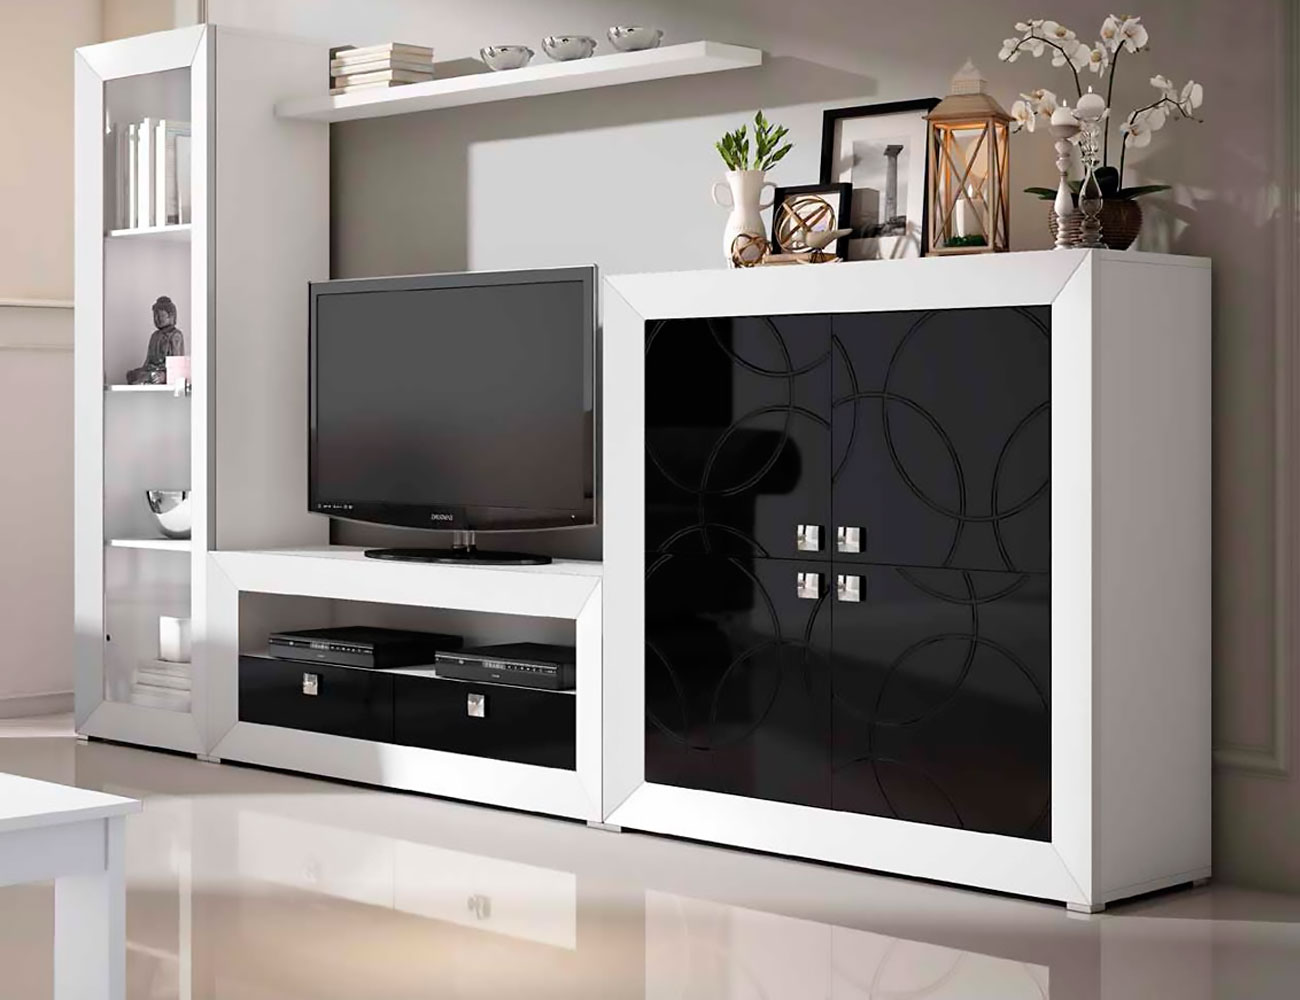 Mueble de sal n modular moderno lacado 2477 factory for Mueble modular salon